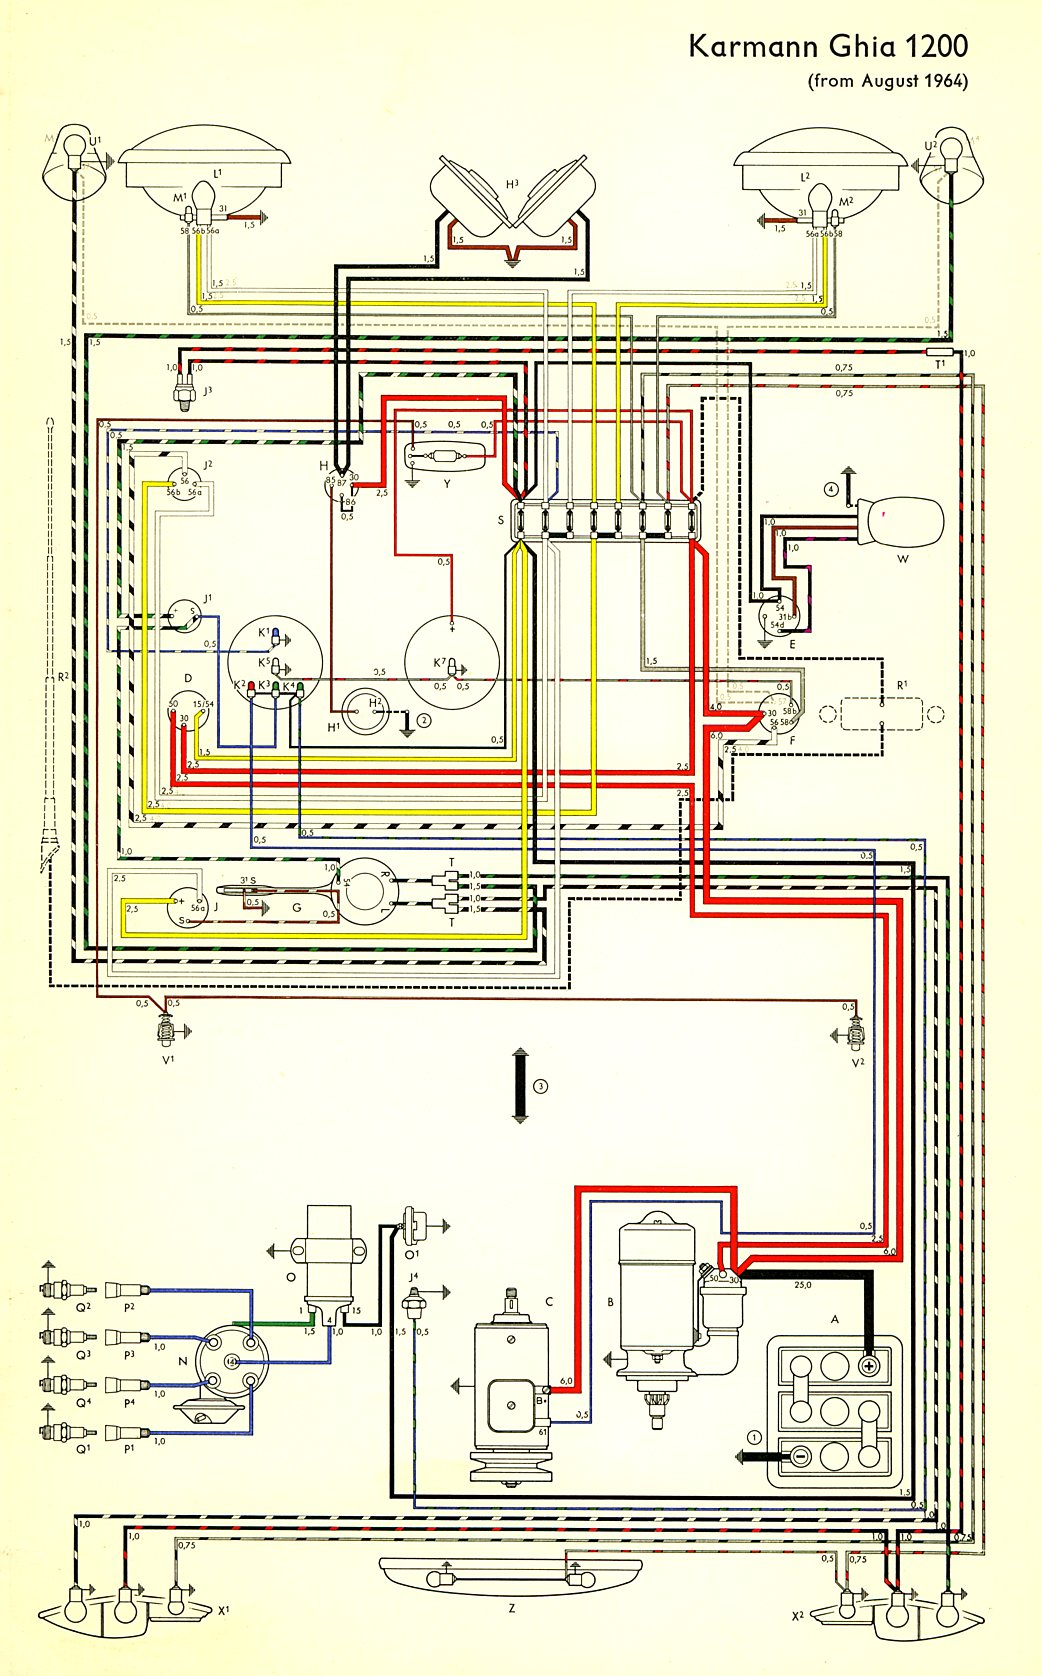 ghia_65 thesamba com karmann ghia wiring diagrams International Tractor Wiring Diagram at gsmx.co